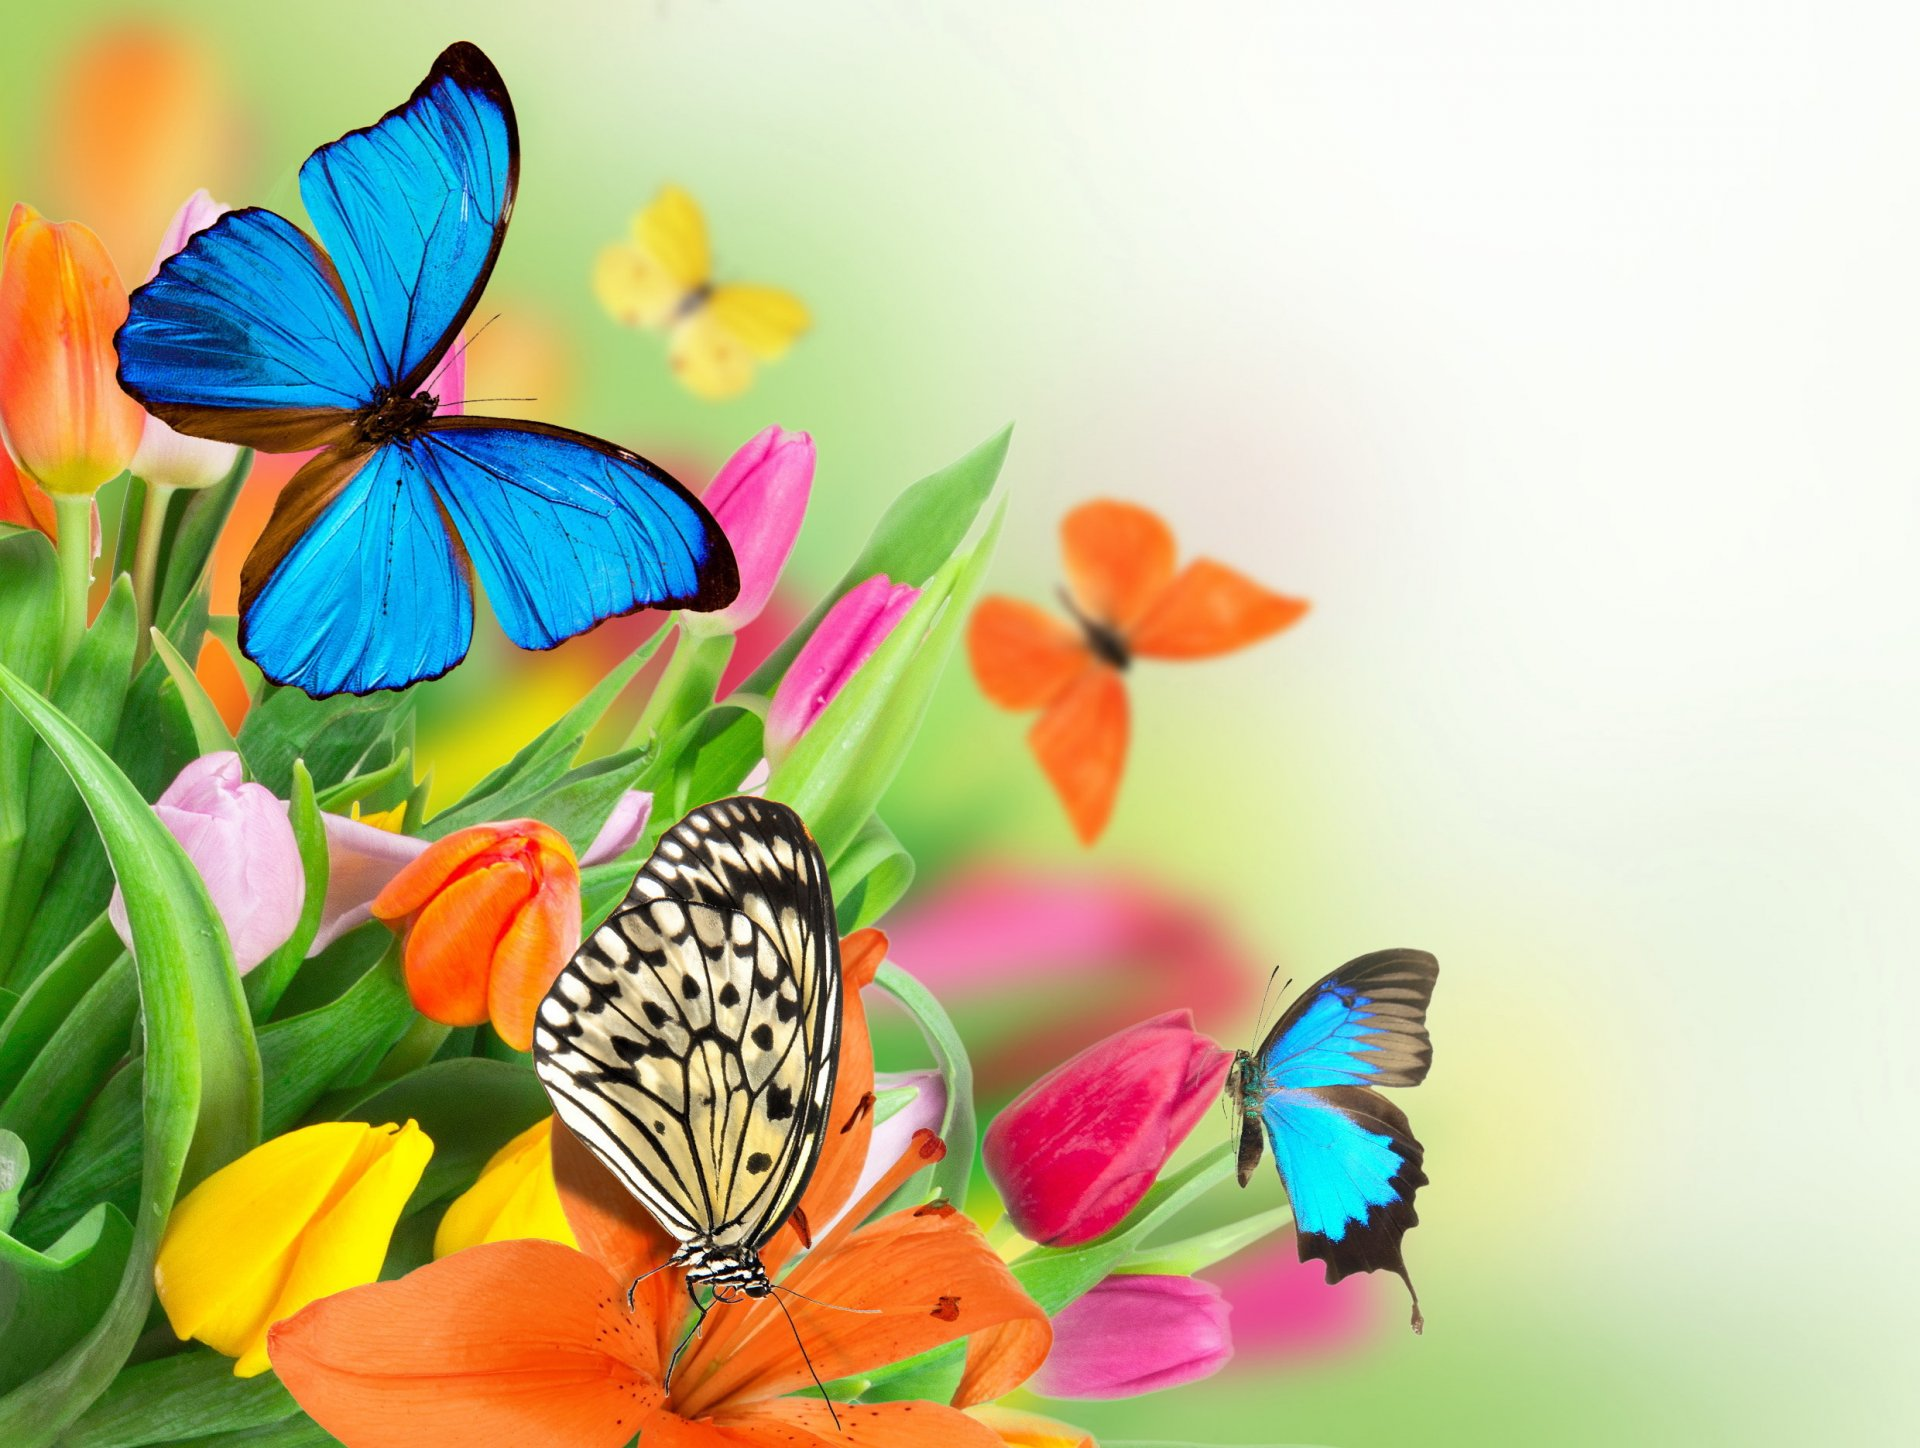 Free Colorful Flower Desktop Wallpaper: Butterfly Frames Wallpapers High Quality